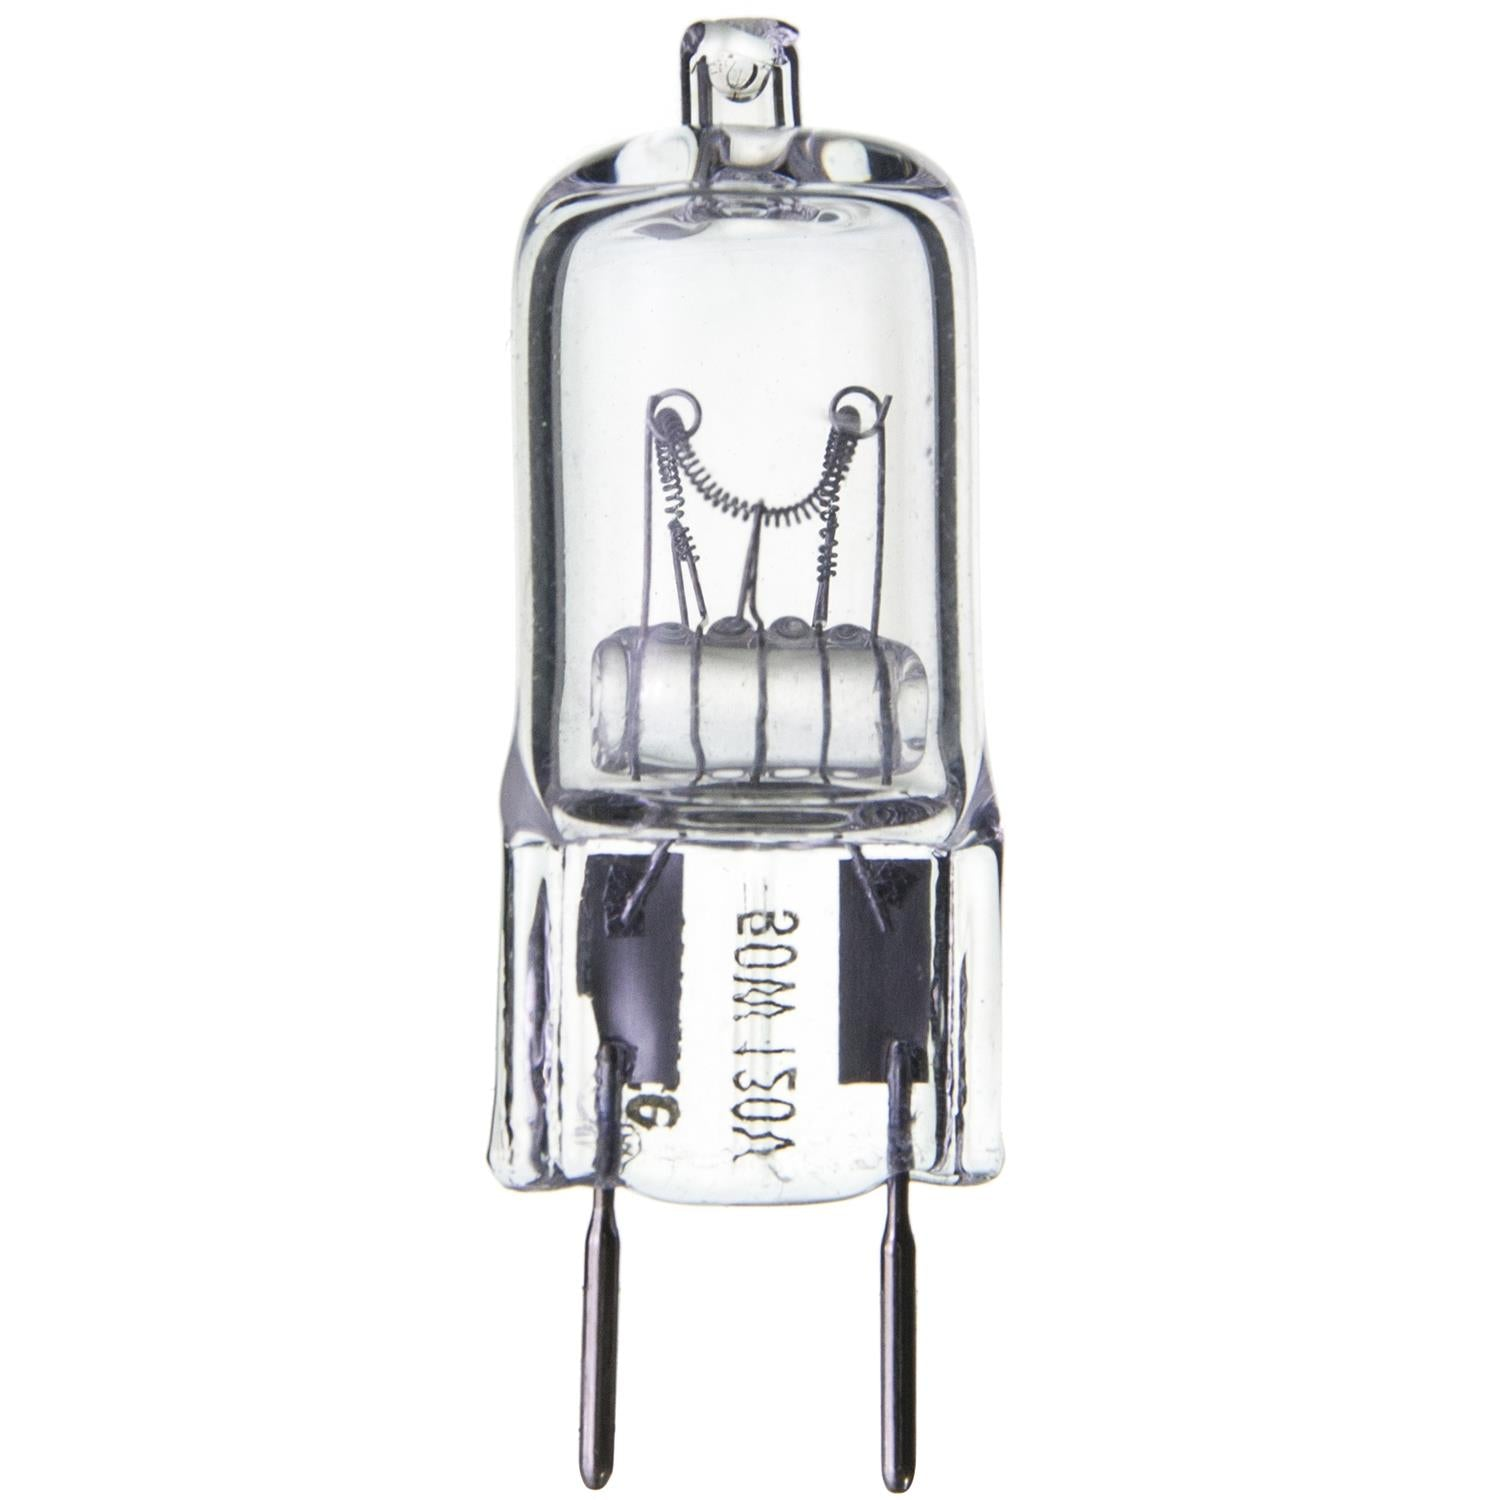 SUNLITE 50w 120v Single Ended T3.5 GY8 Bi-Pin Base Clear 3200K Halogen Lamp